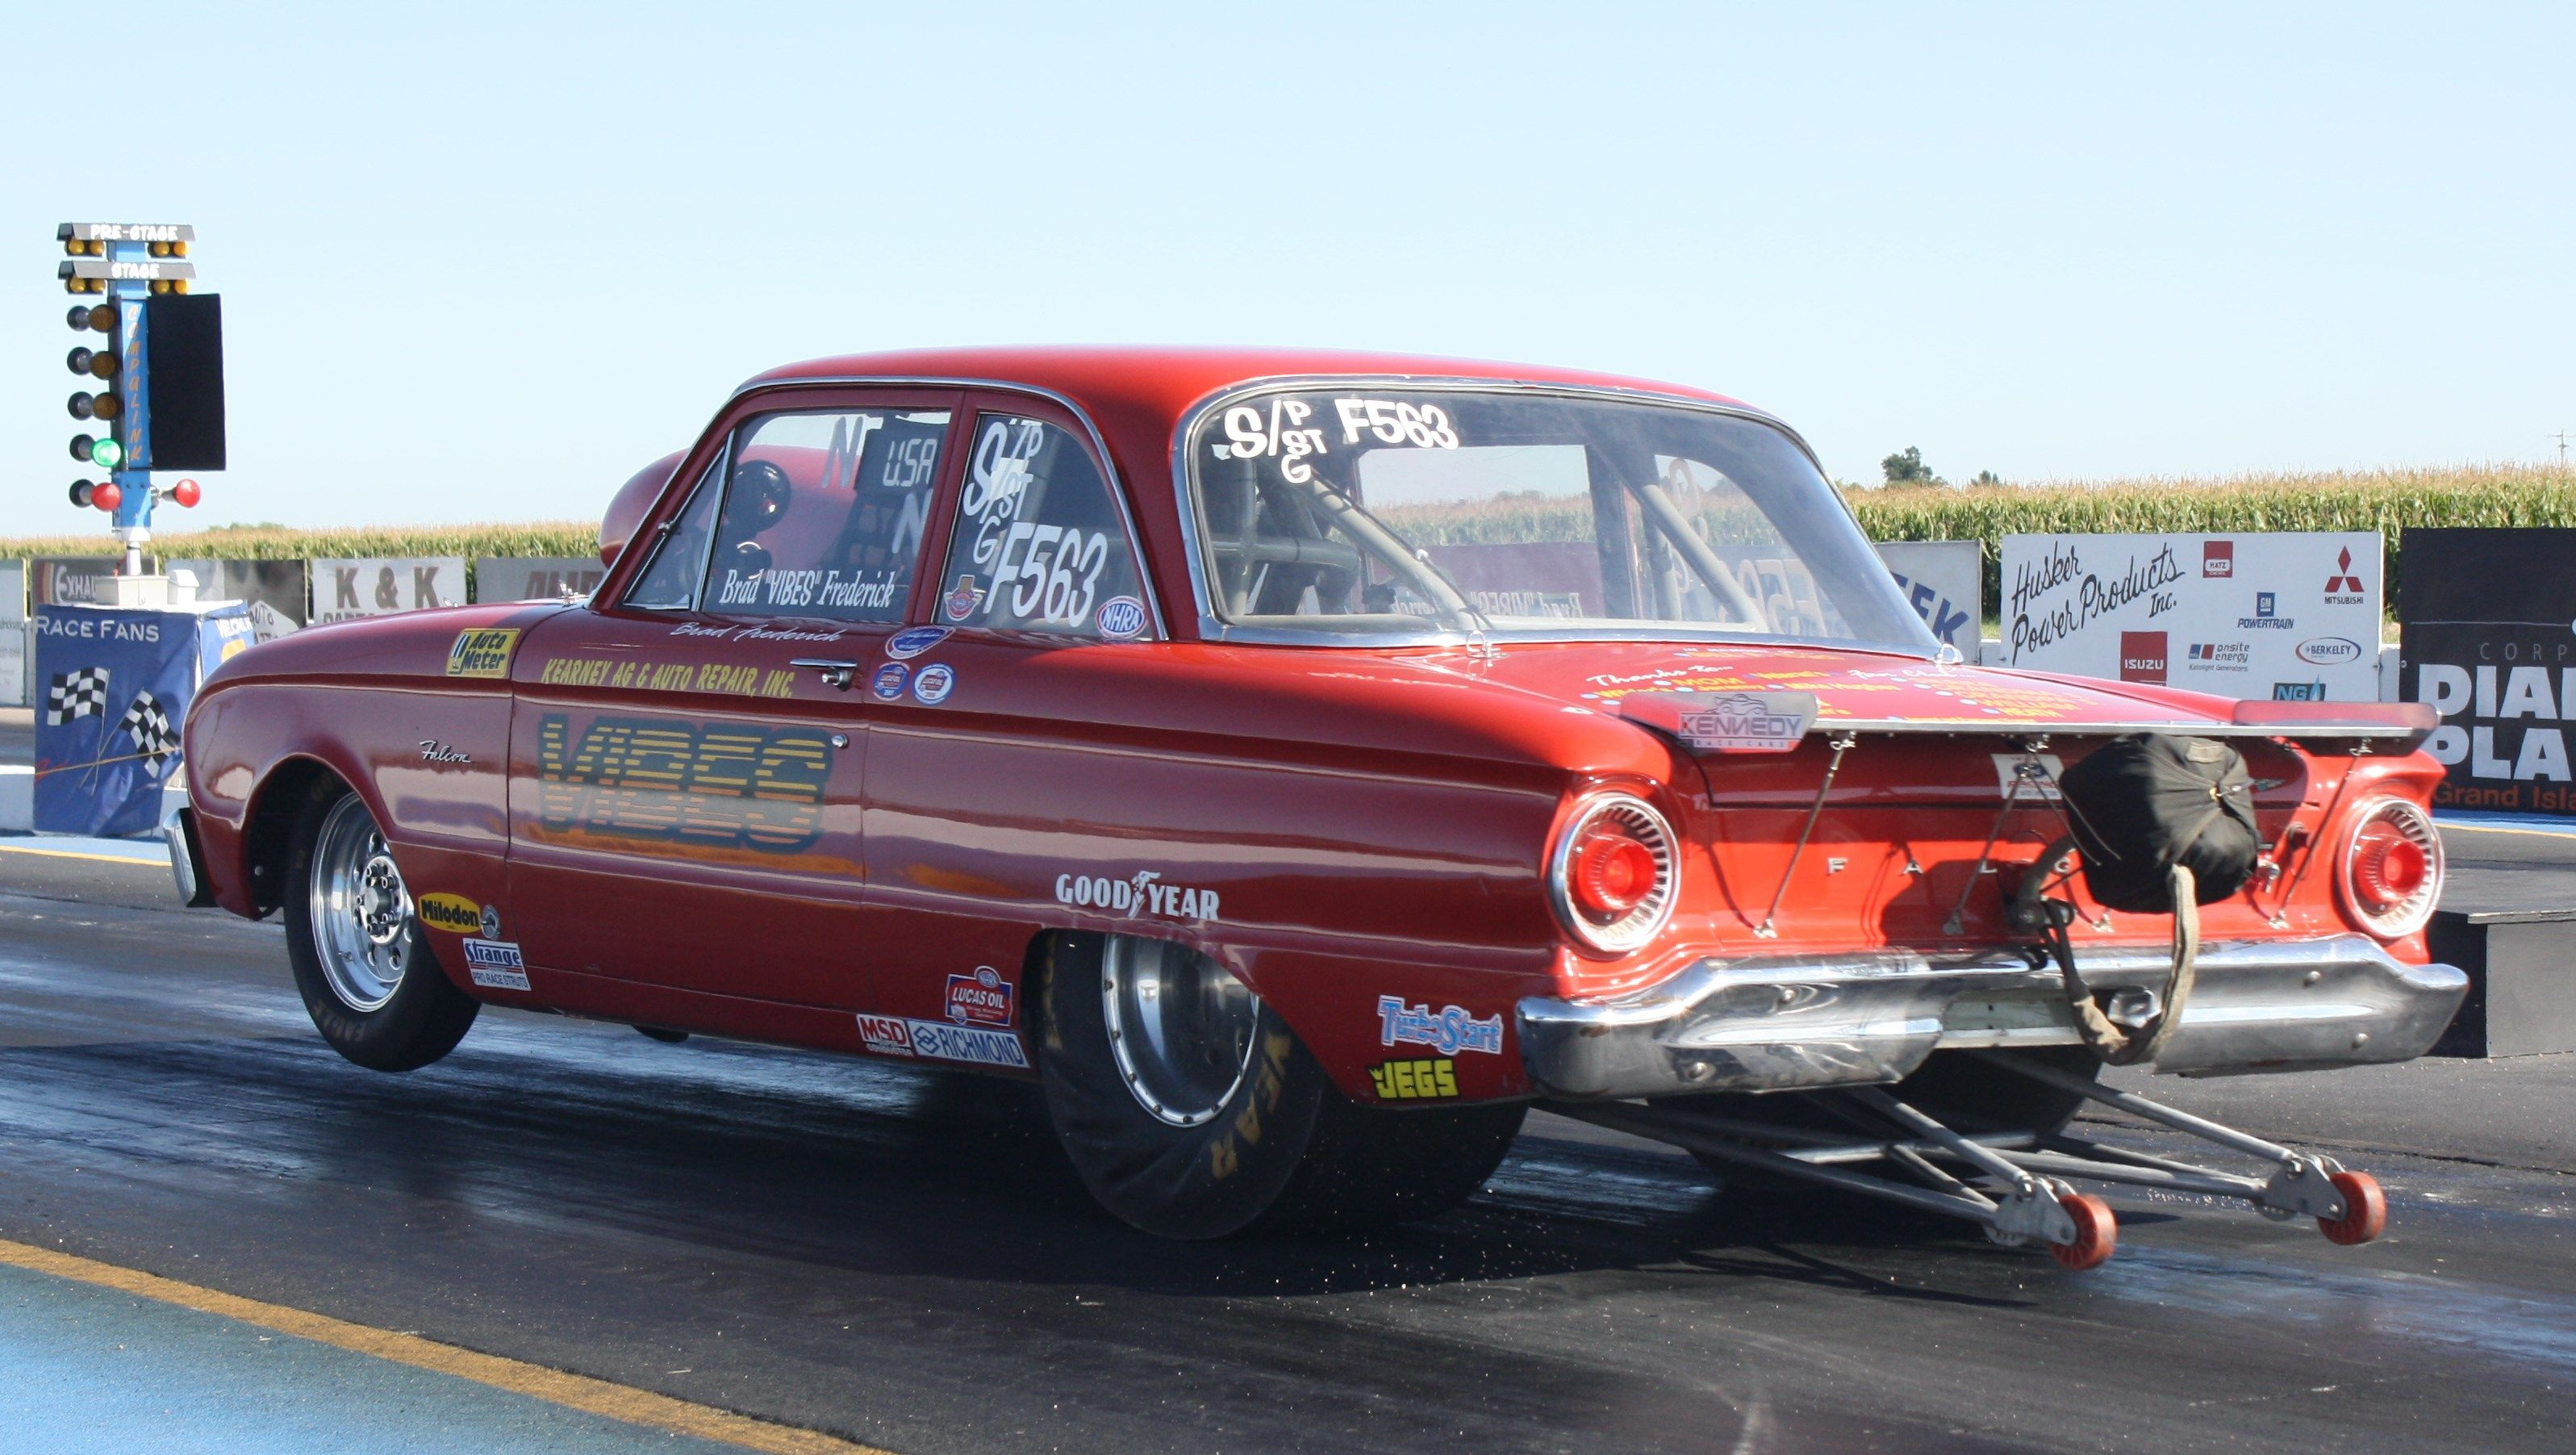 Drag race car paint schemes - 1962 Ford Falcon Launching Wheels Up Maintenance Of Old Vehicles The Material For New